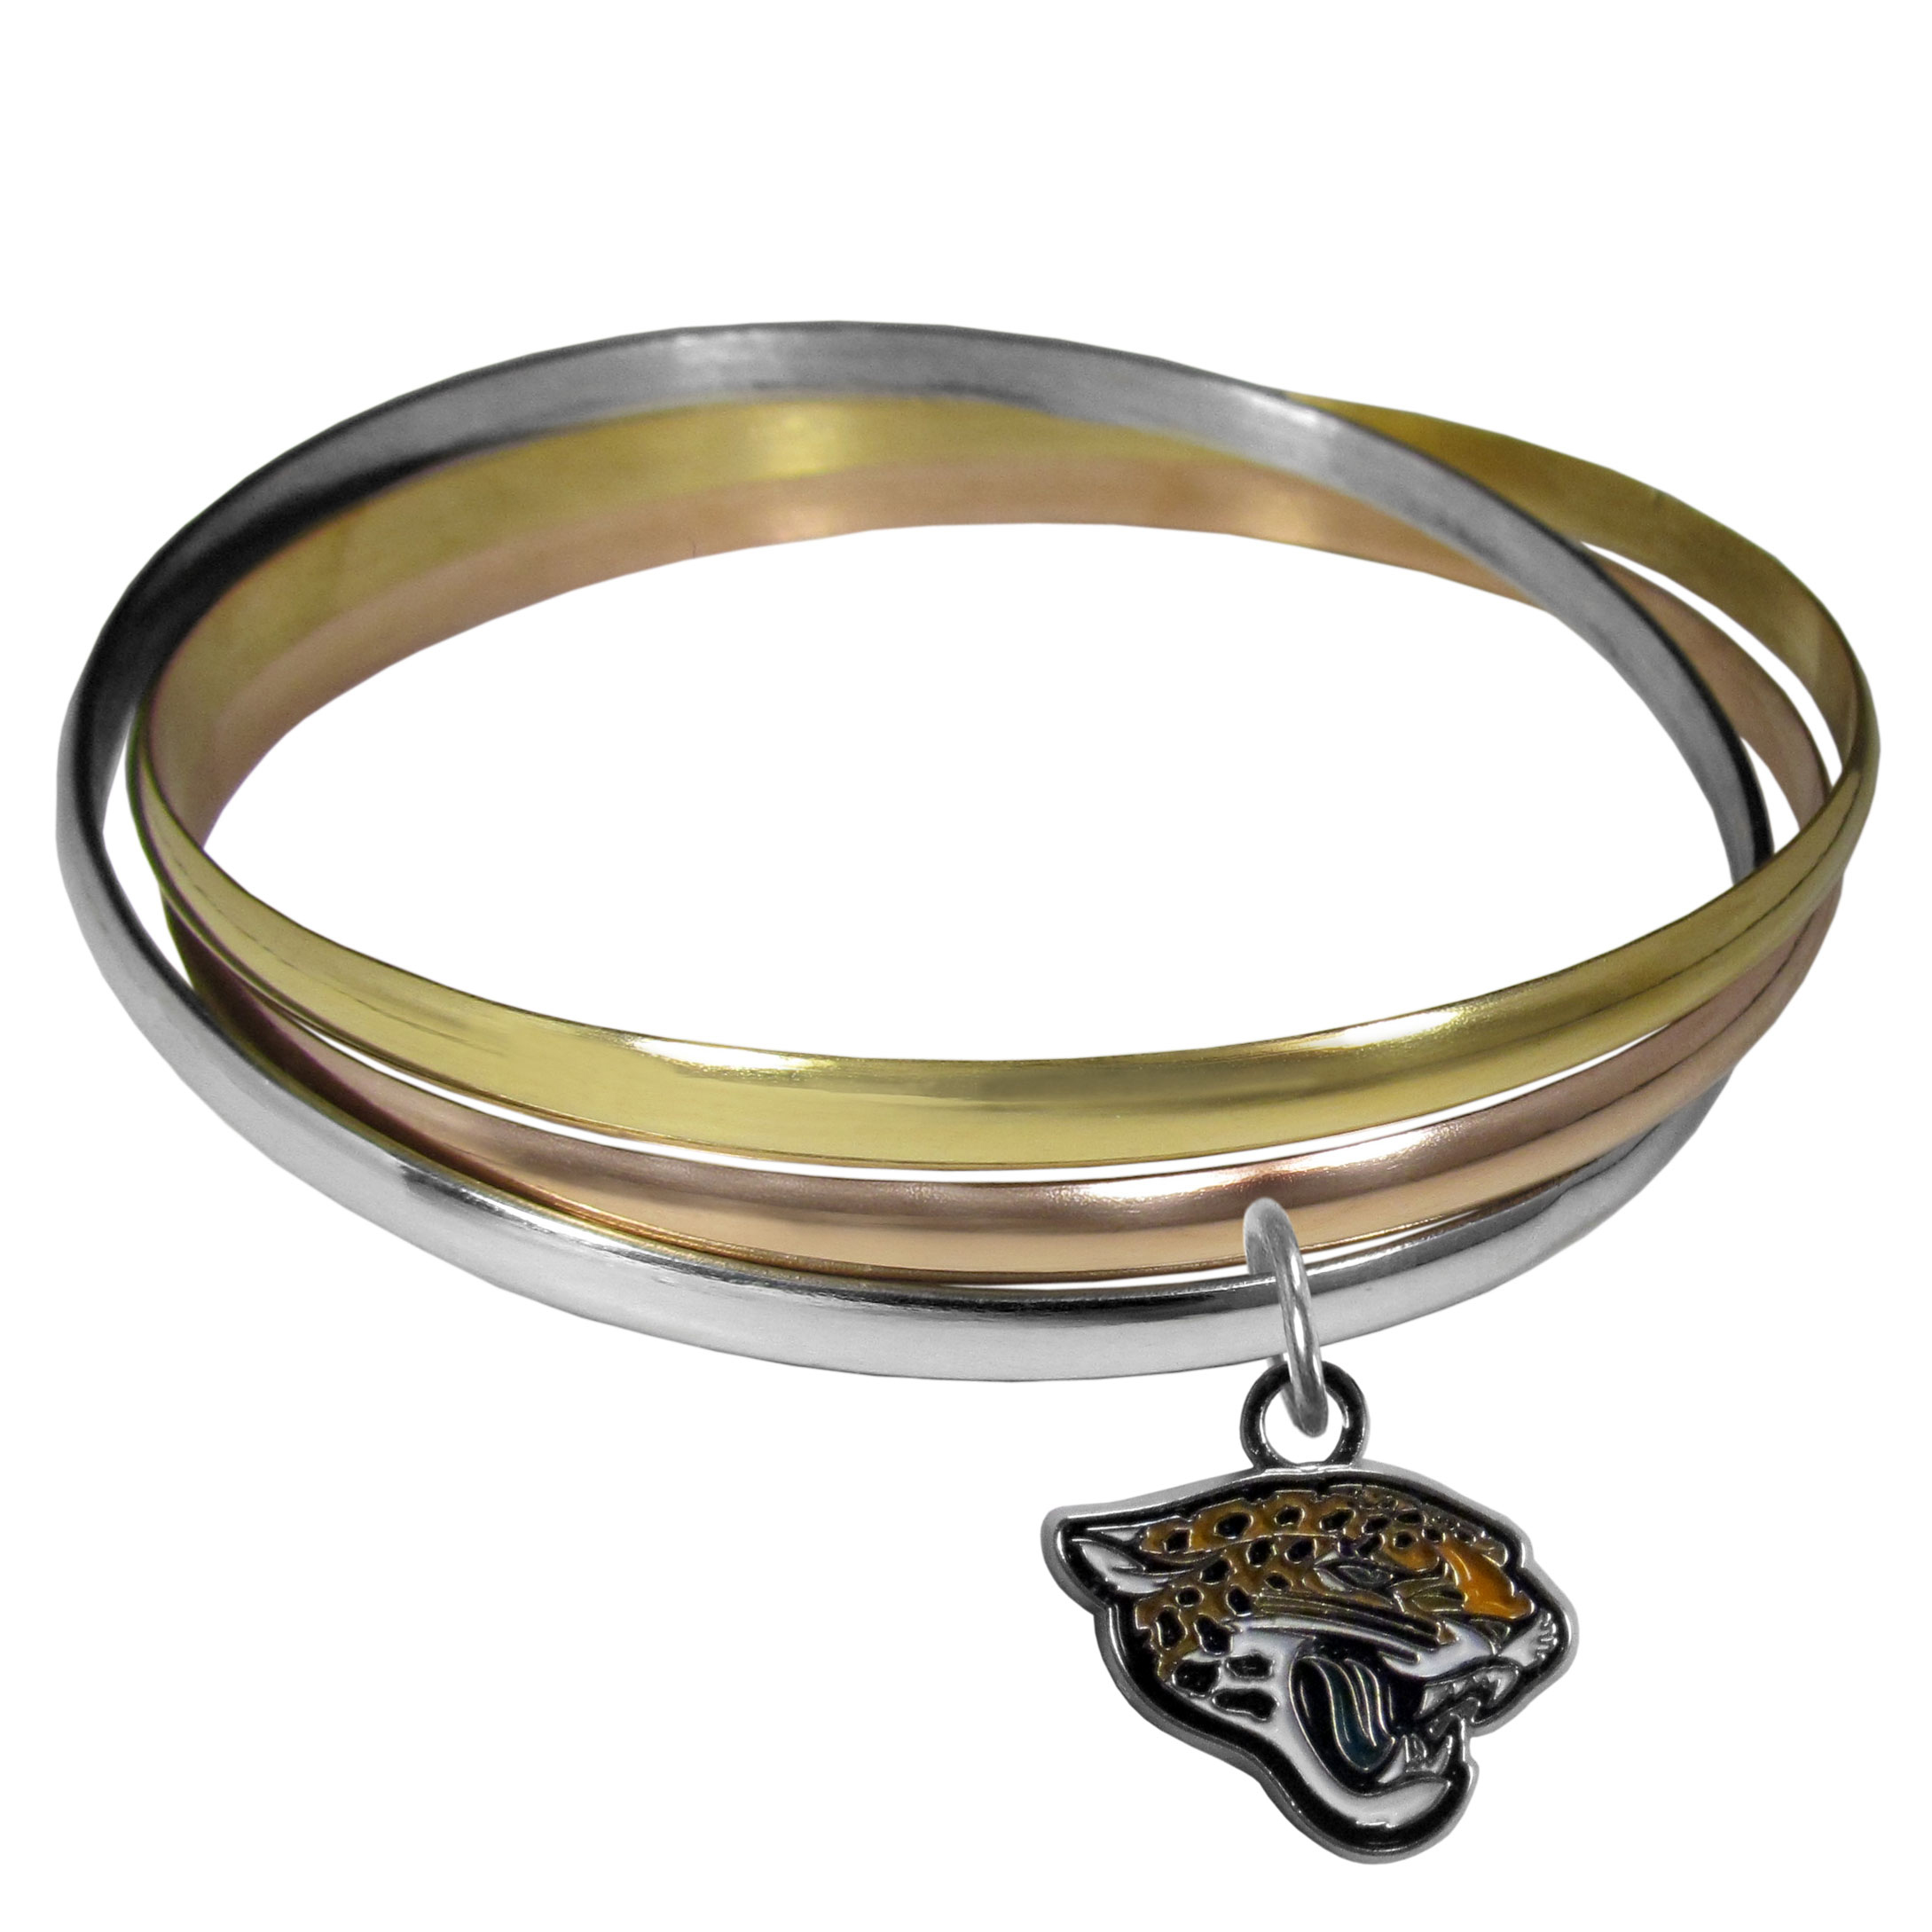 Jacksonville Jaguars Tri-color Bangle Bracelet - These beautiful bangles come in a interlocking style and feature a fully cast Jacksonville Jaguars charm with enameled team colors. The bracelet has a silver toned bangle, gold tone bangle and brass toned bangle.